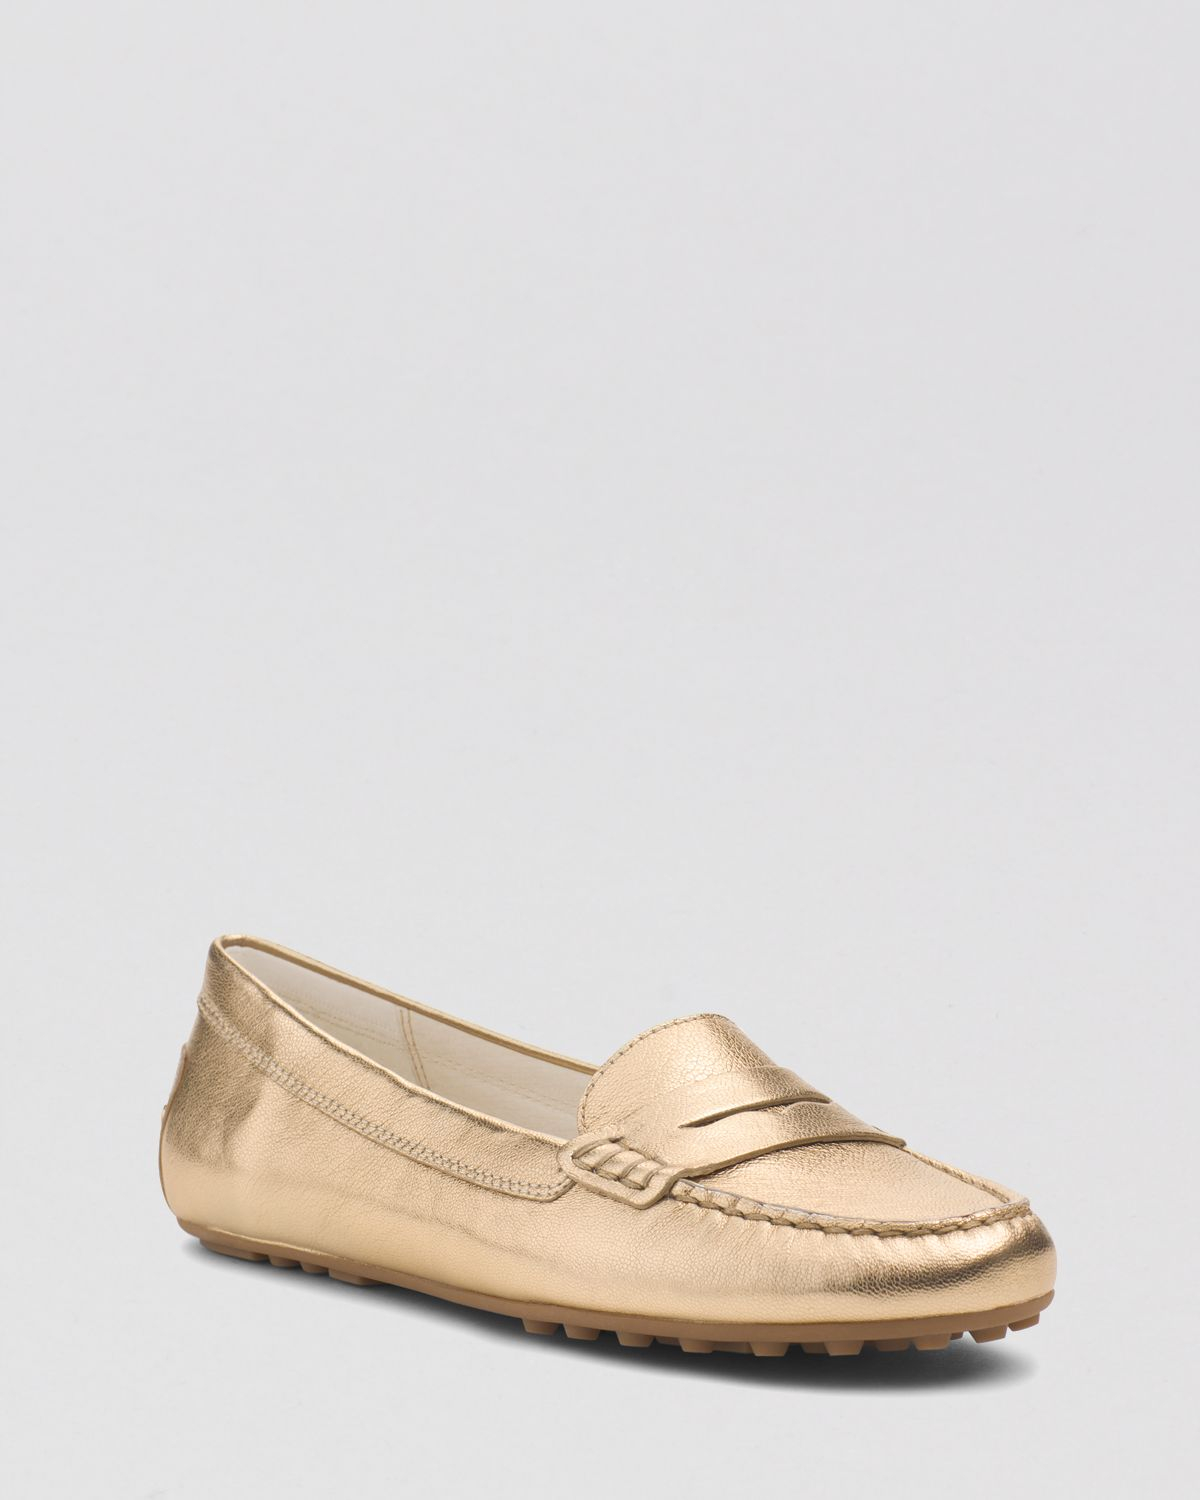 Ralph Lauren Shoes Loafers Women